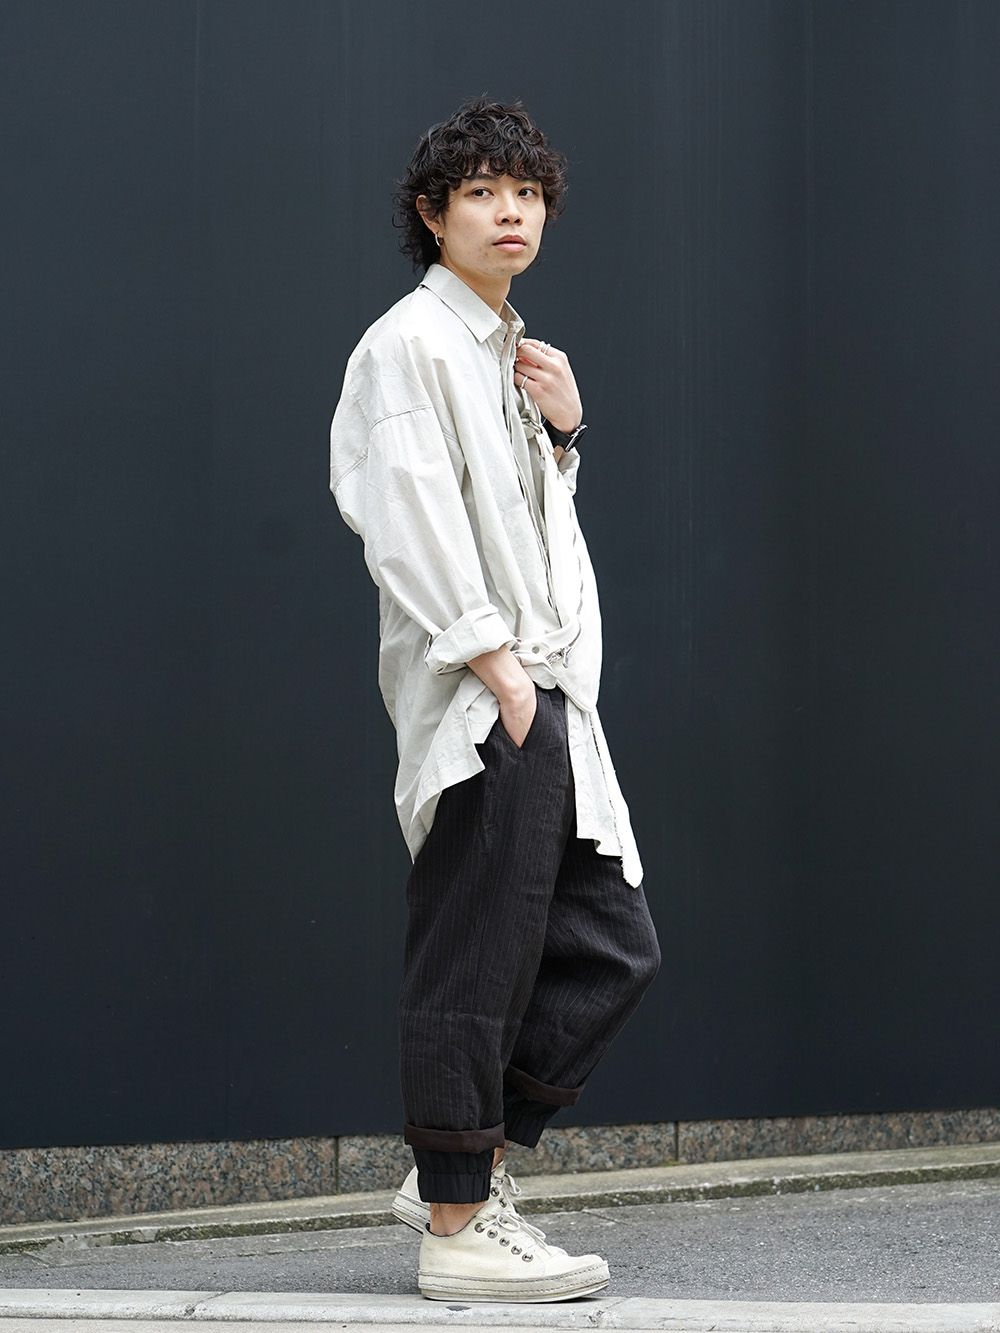 ZIGGY CHEN Relaxed Atmosphere Style - 1-002